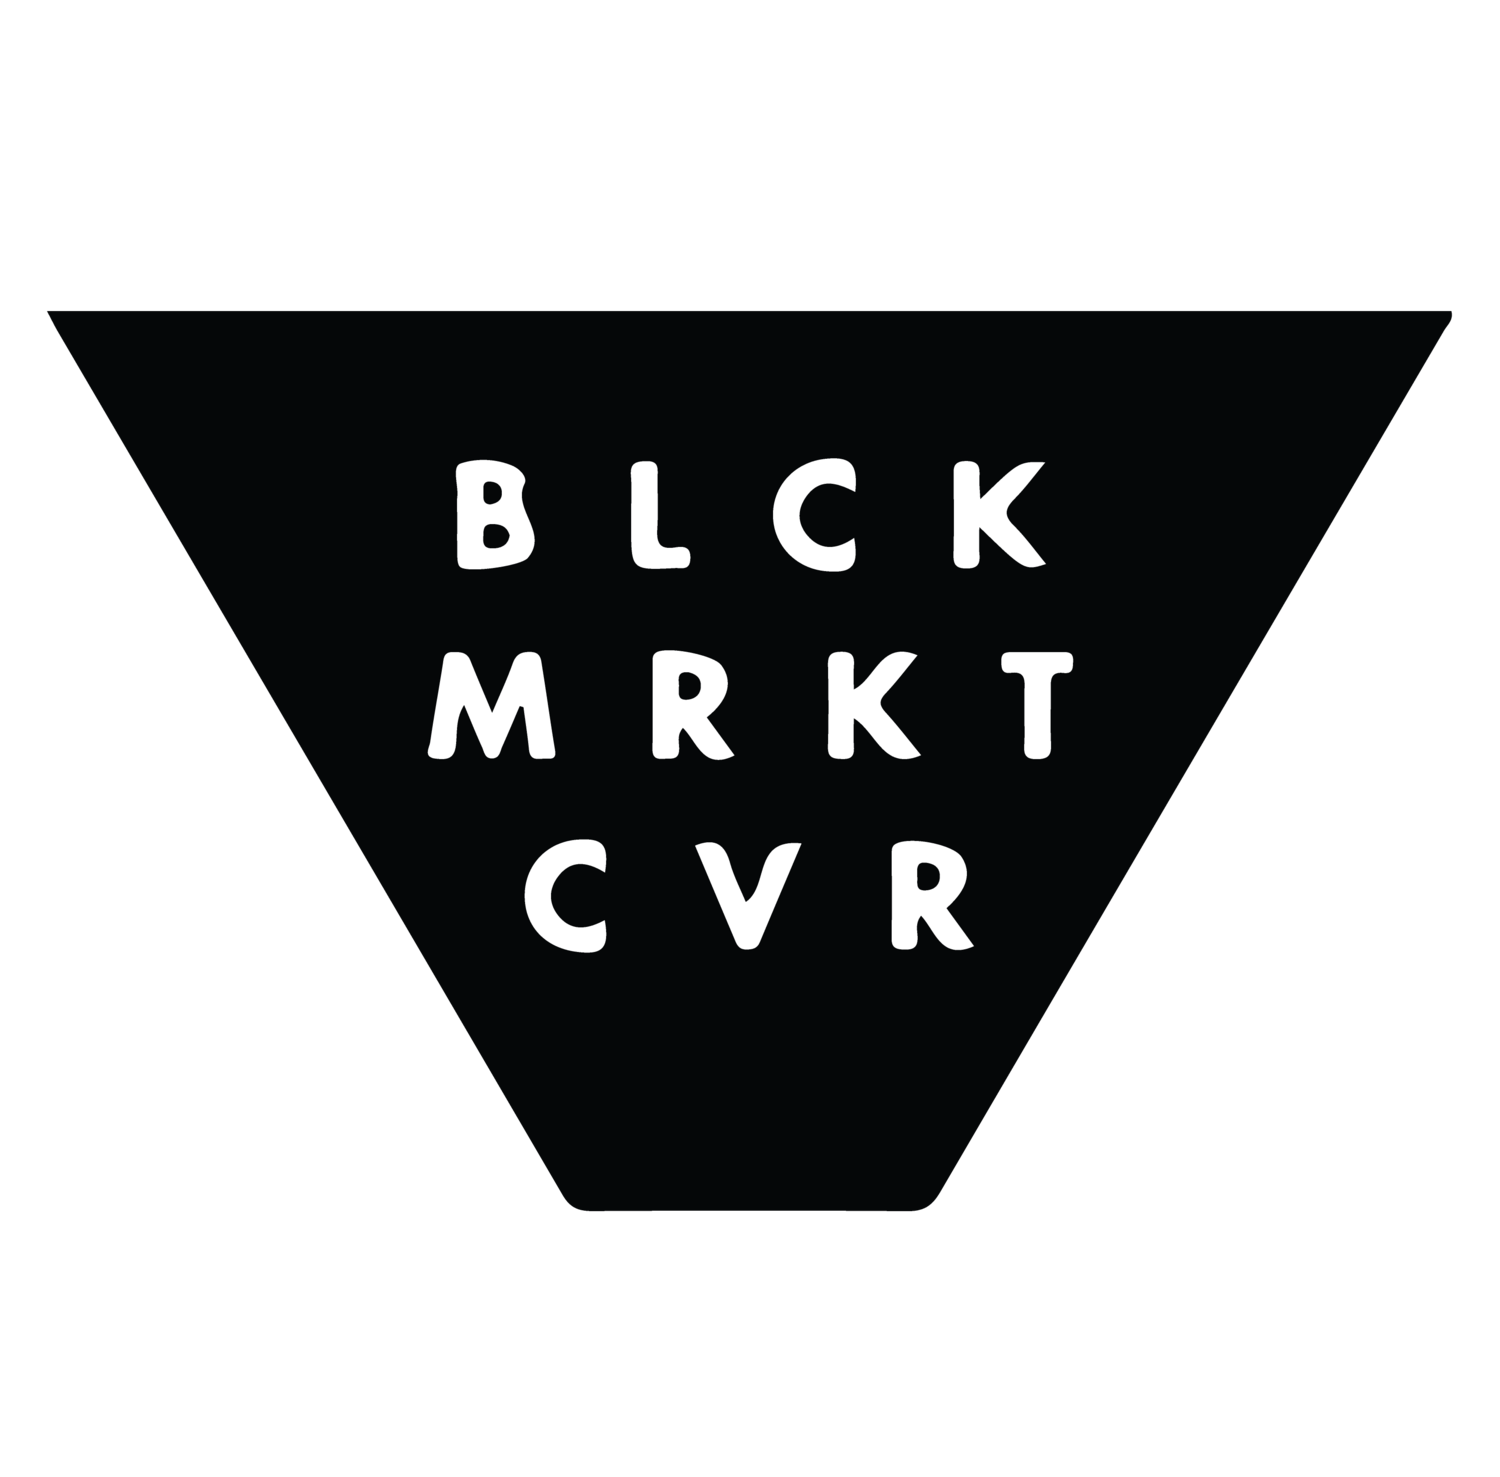 Chicago Lifestyle Clothing Brand - Black Market Caviar